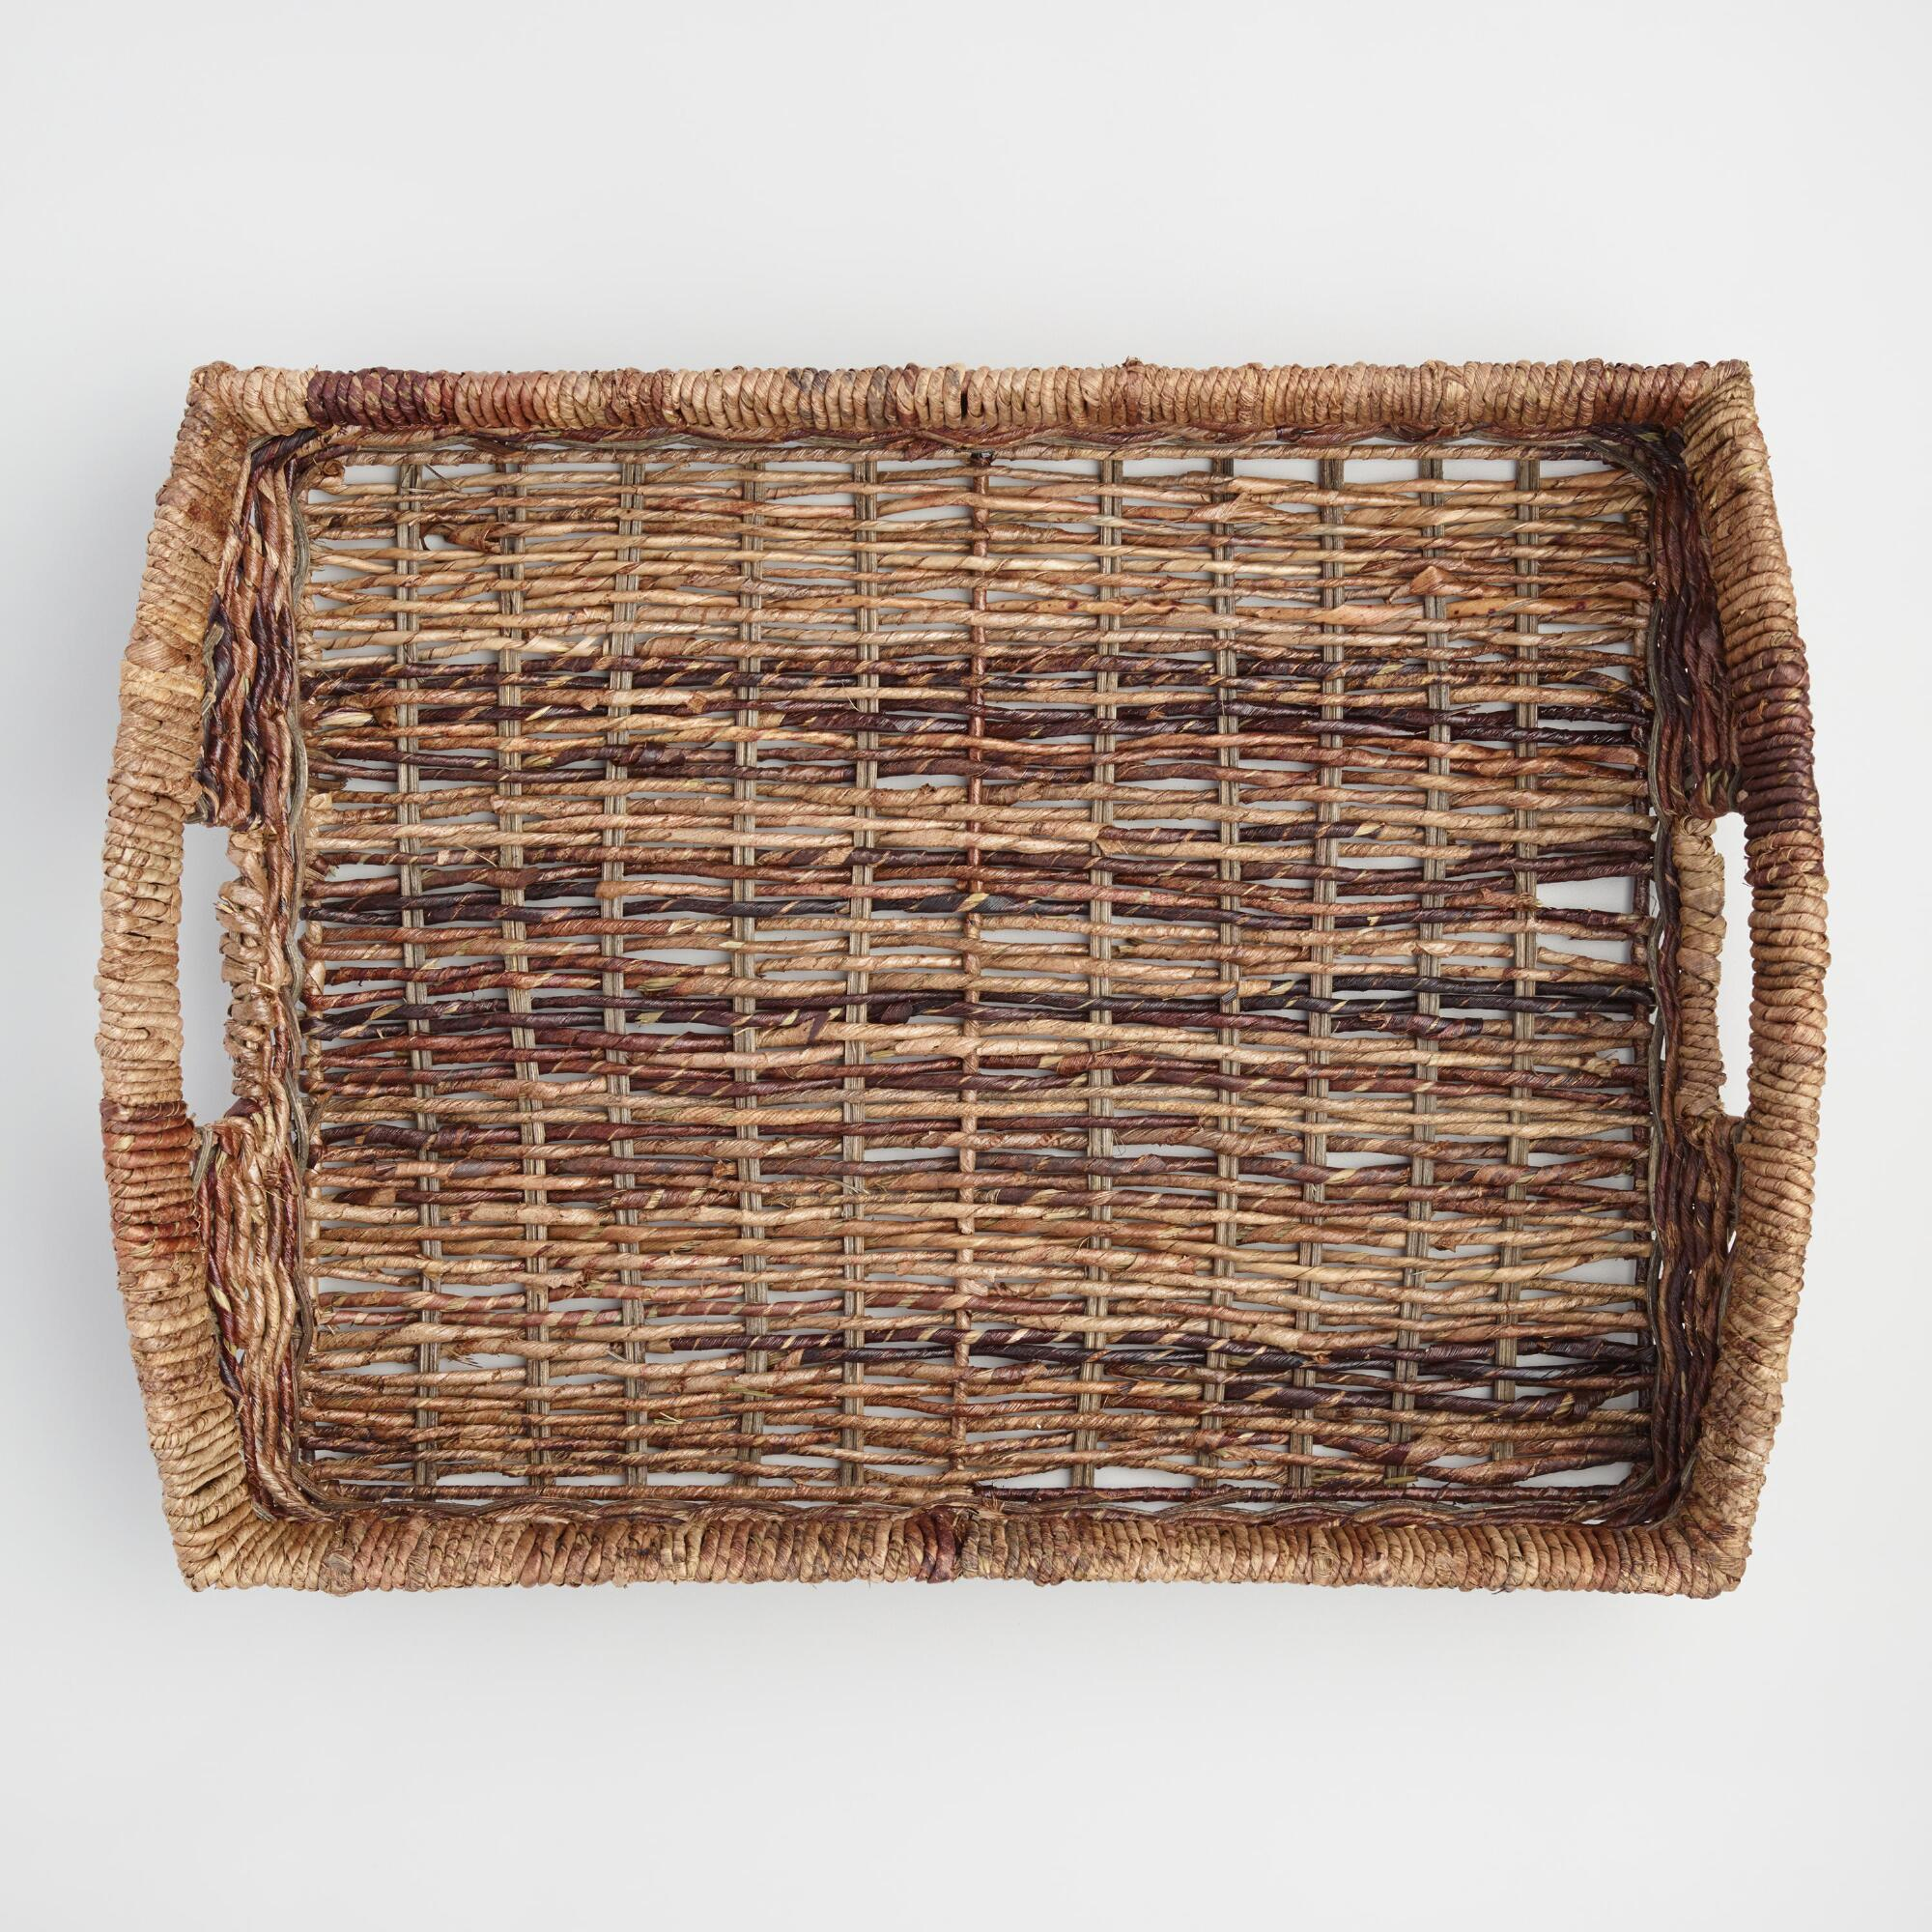 Madras Serving Tray: Brown - Natural Fiber by World Market